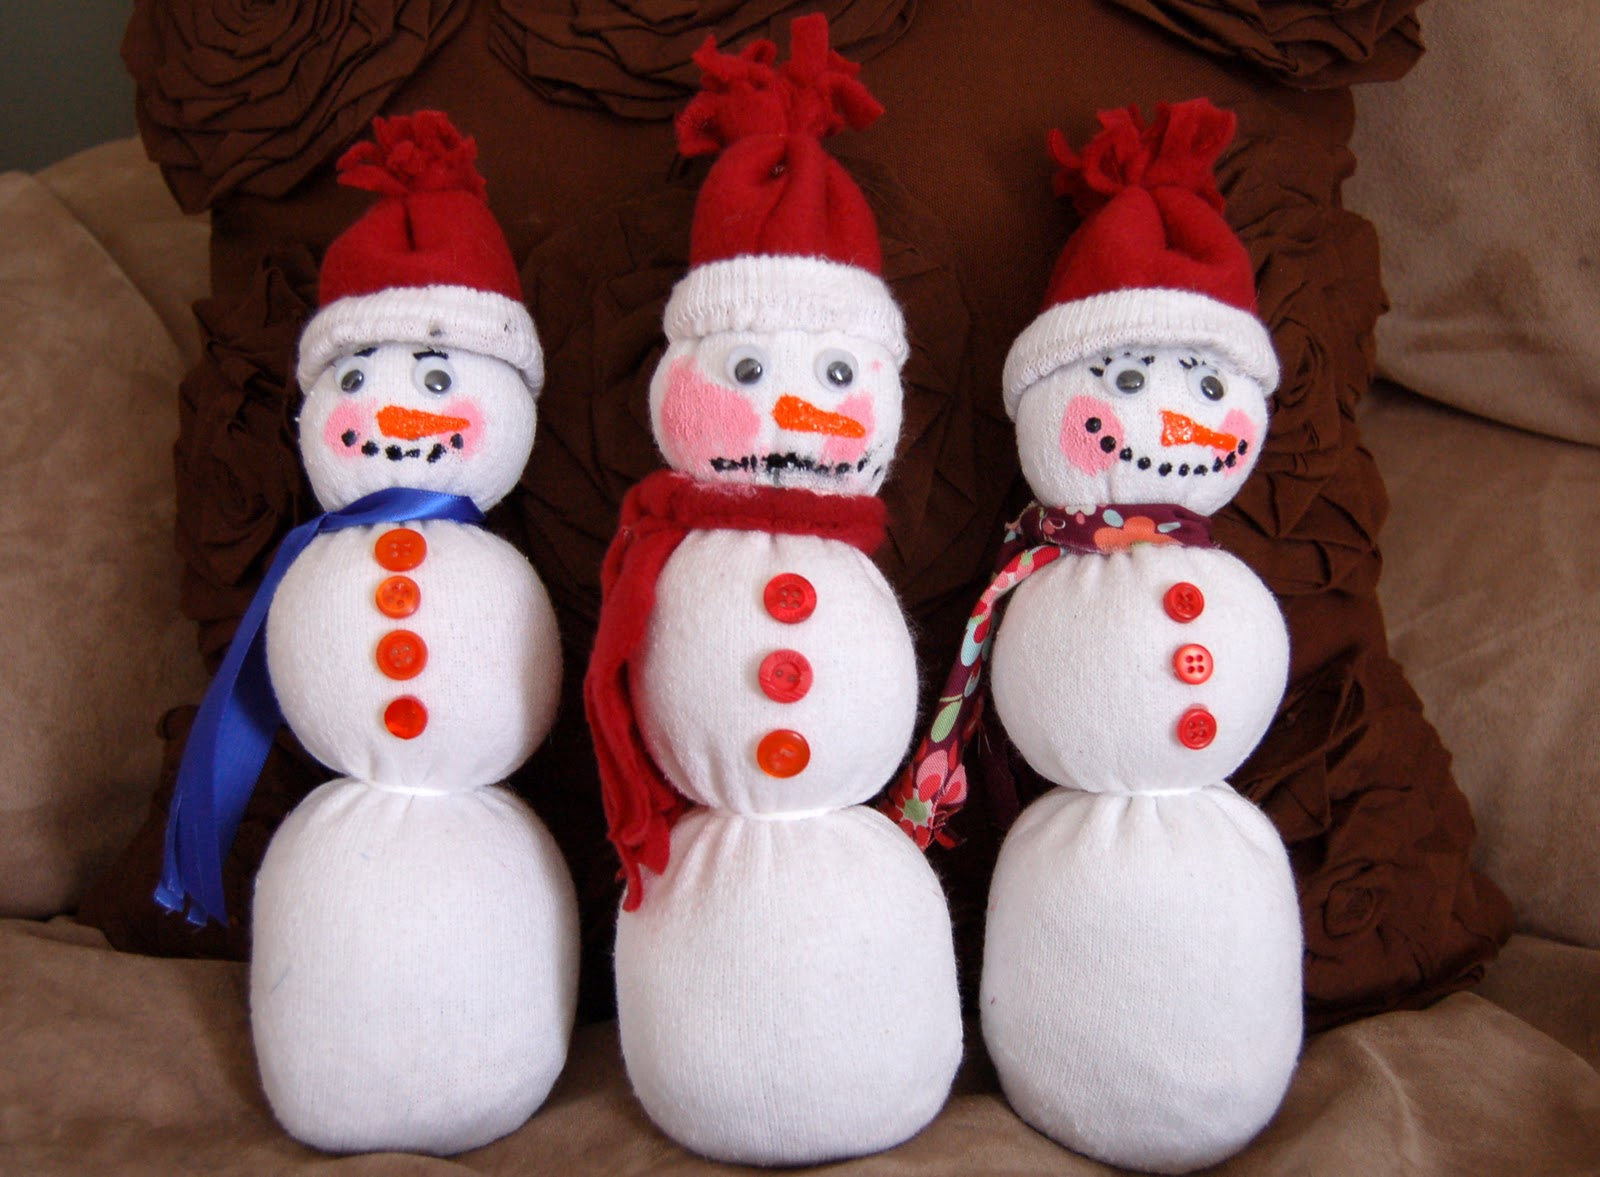 How to Make a Snowman out of a Toilet Paper Roll